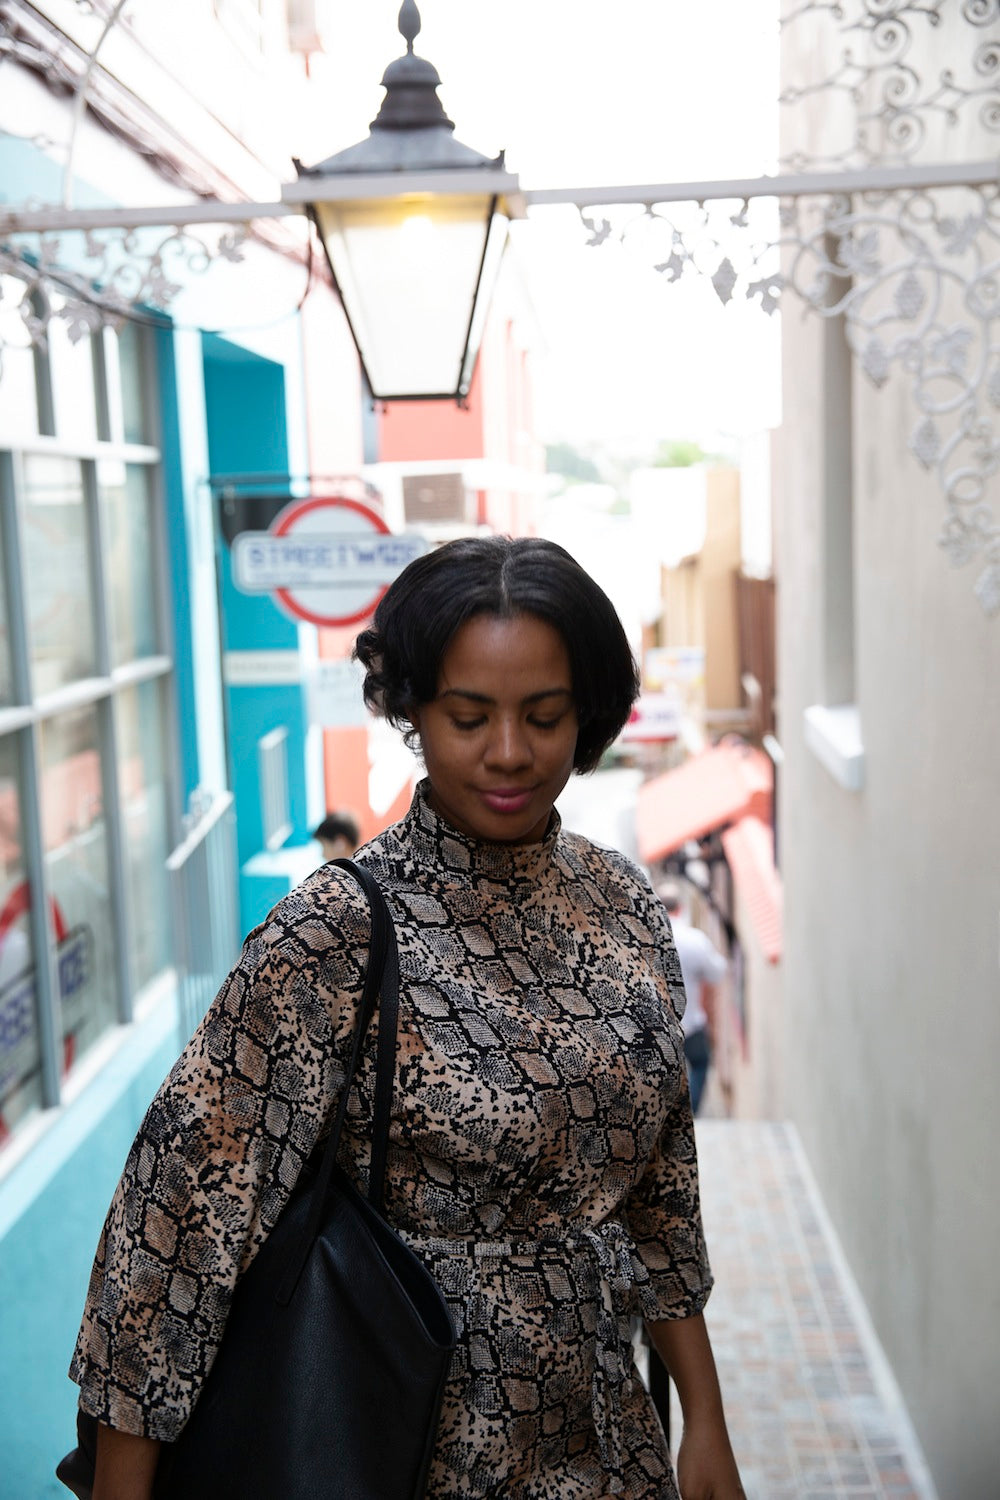 The House Bermuda interviews Bermuda Born creative director Patrice Morgan about her handbag business